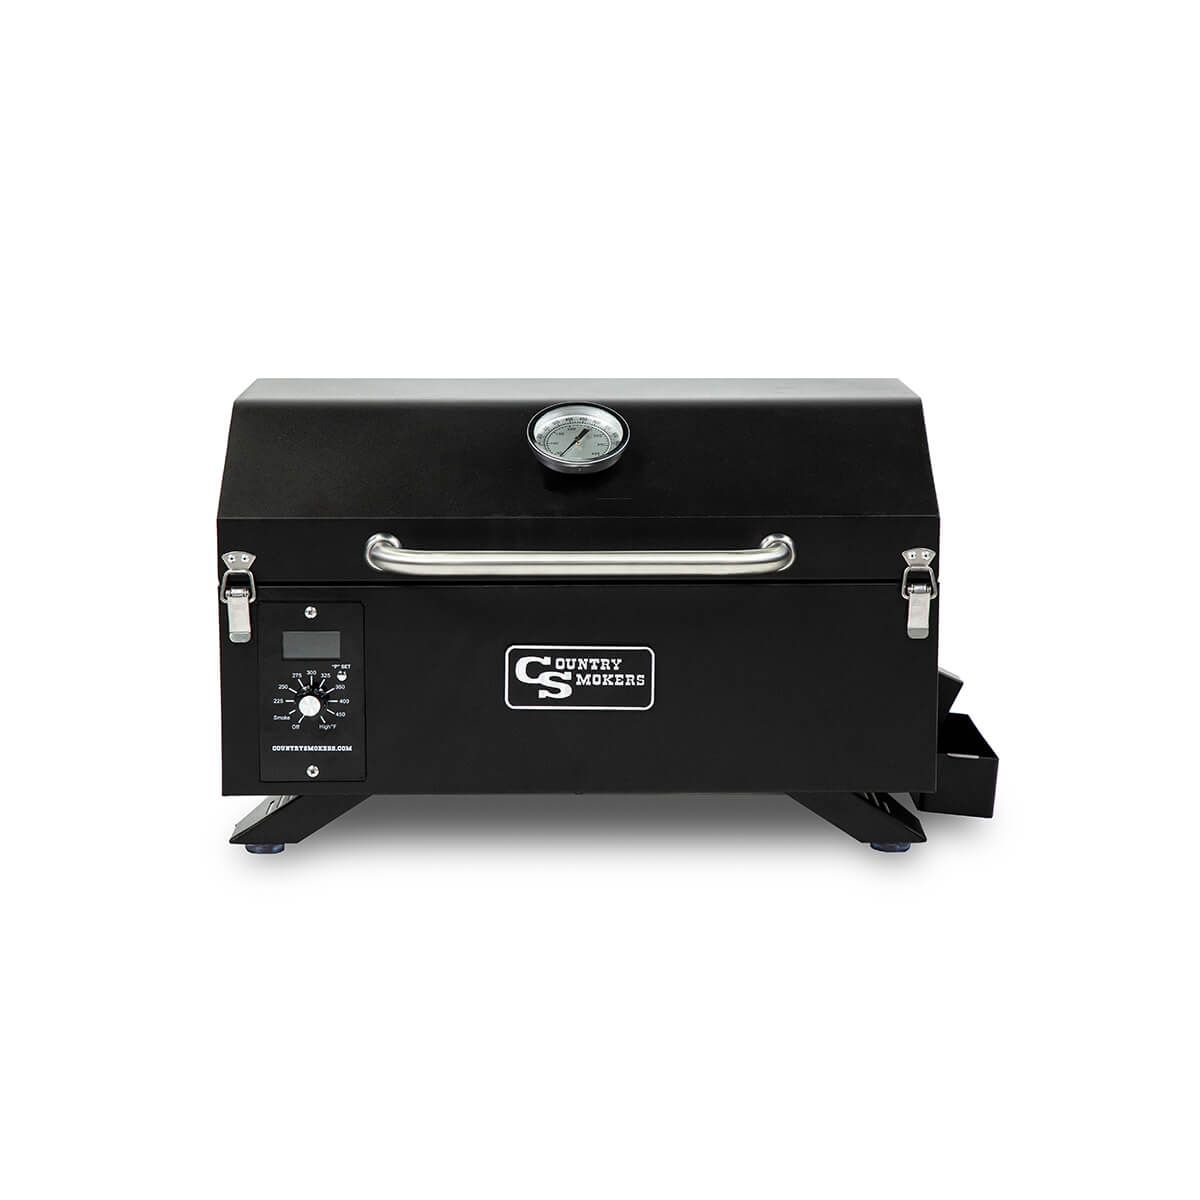 Country Smokers Traveler Portable Wood Pellet Grill & Smoker